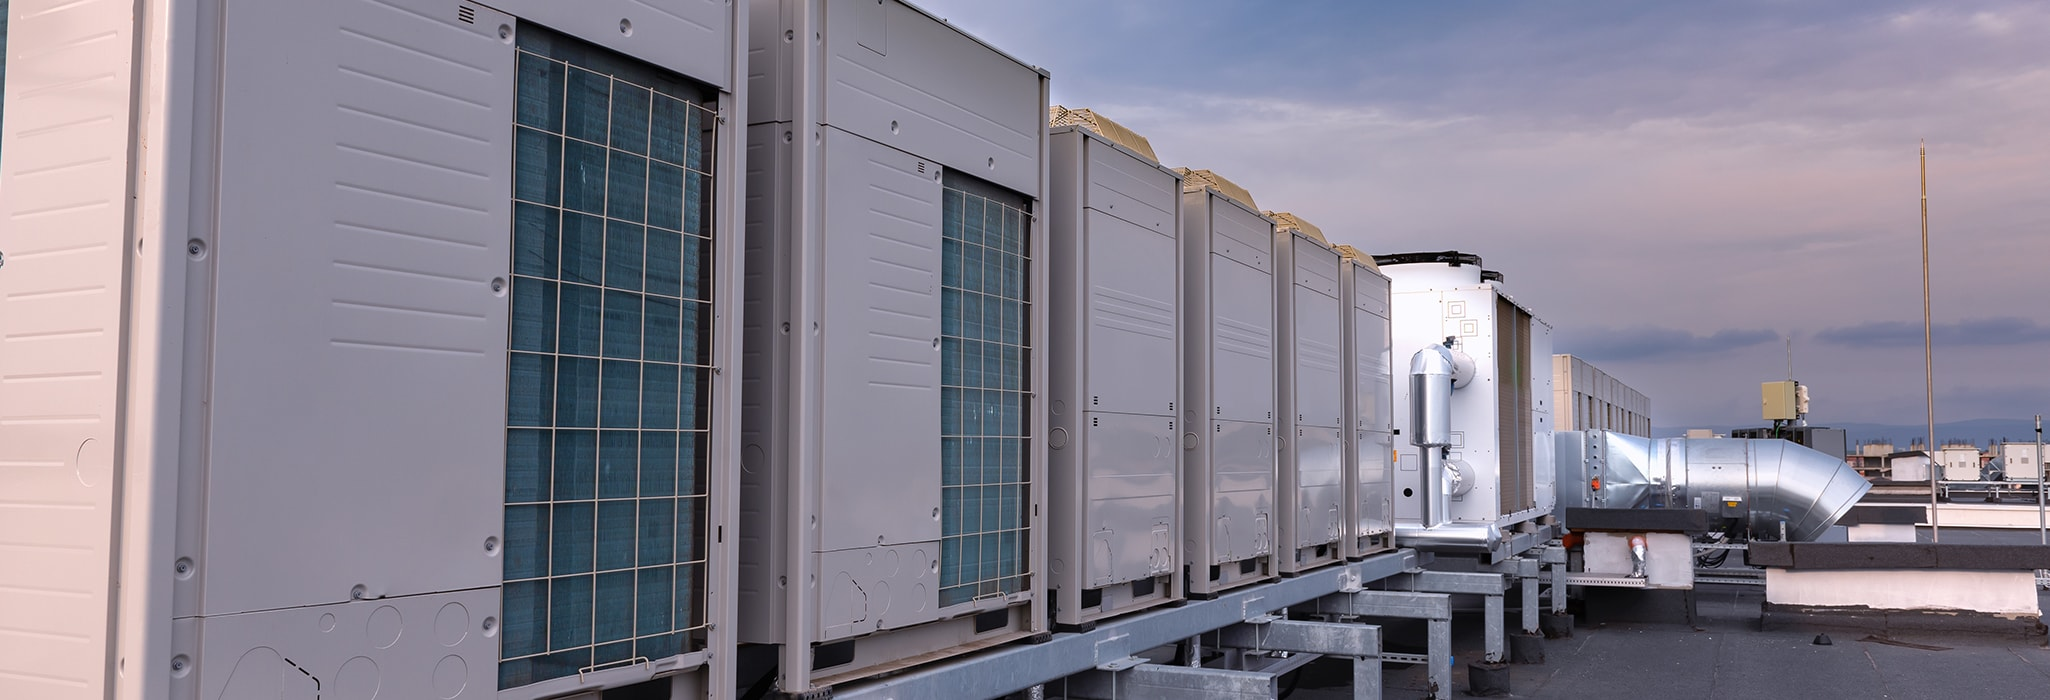 commercial rooftop units.